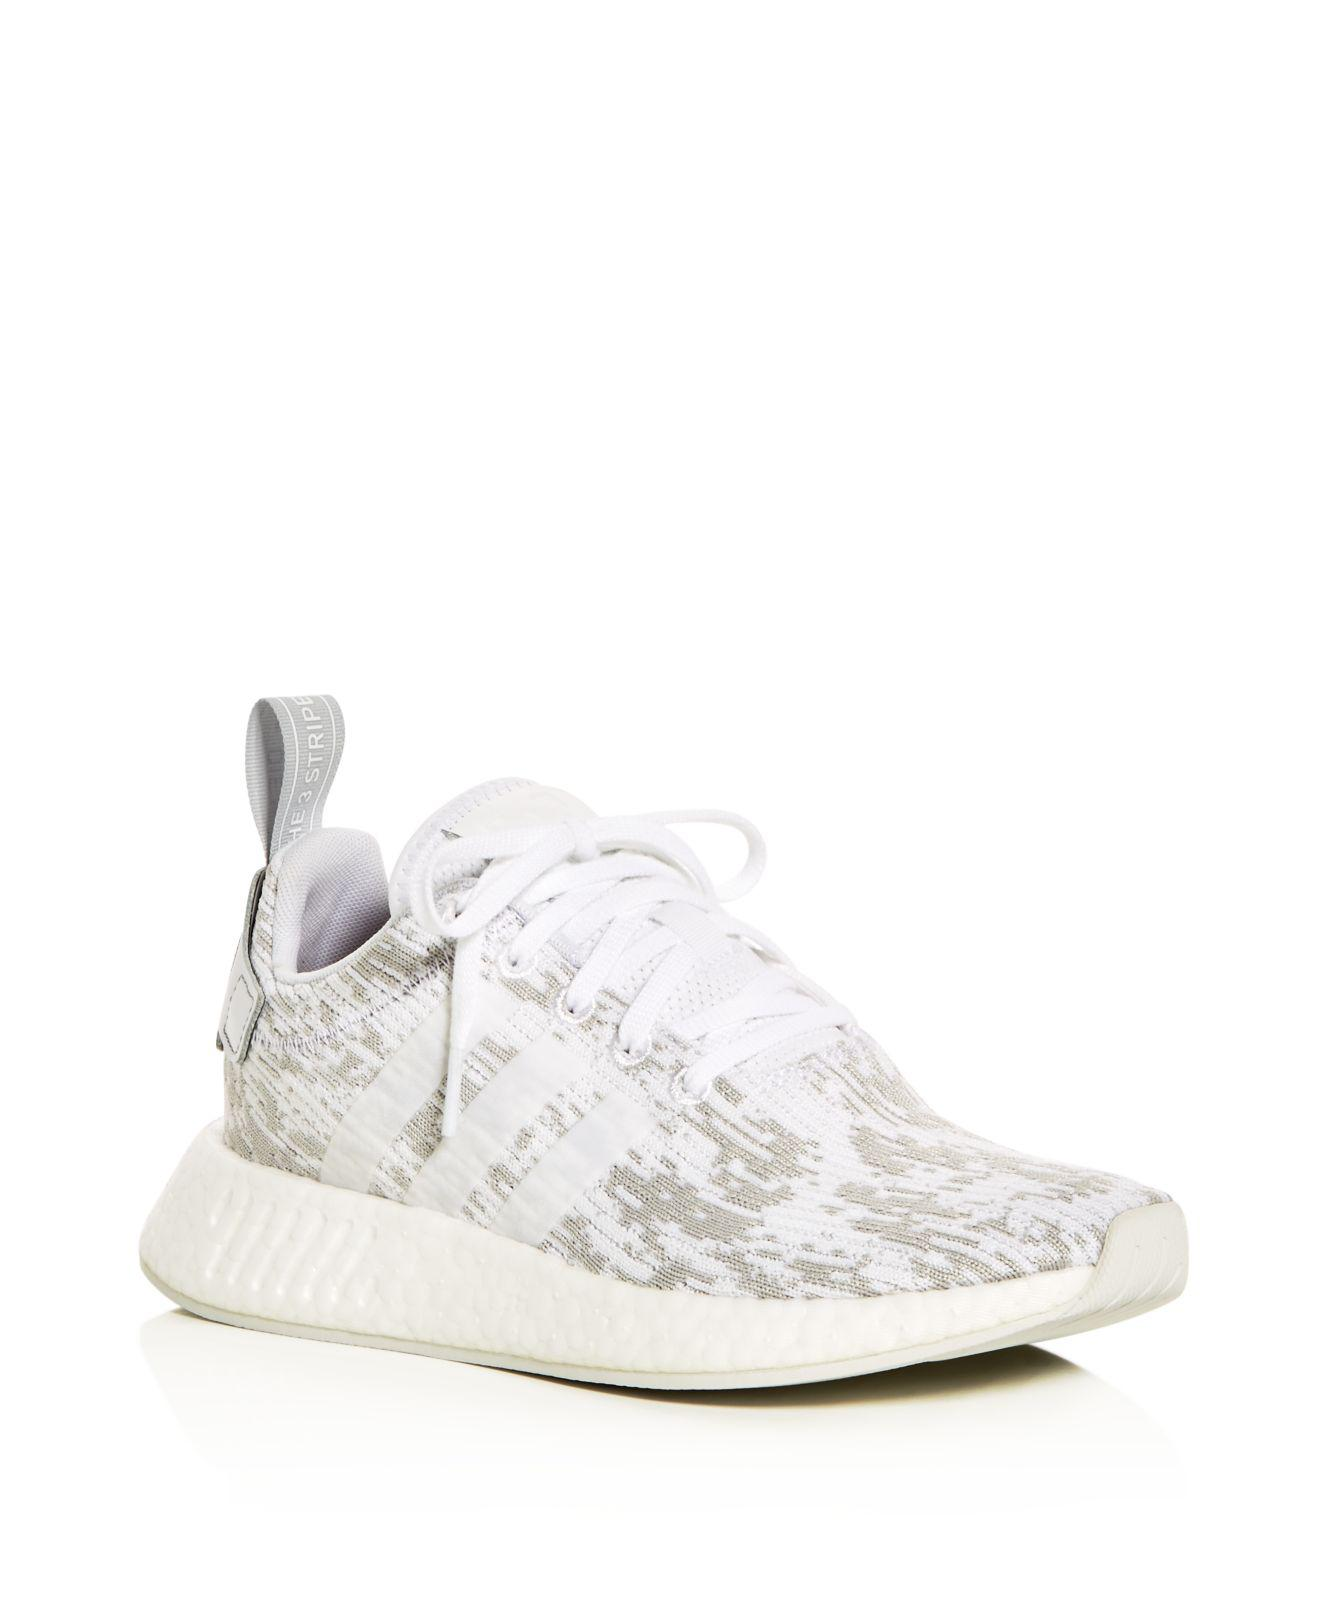 5107f143226e6 Lyst - adidas Women s Nmd R2 Lace Up Sneakers in White